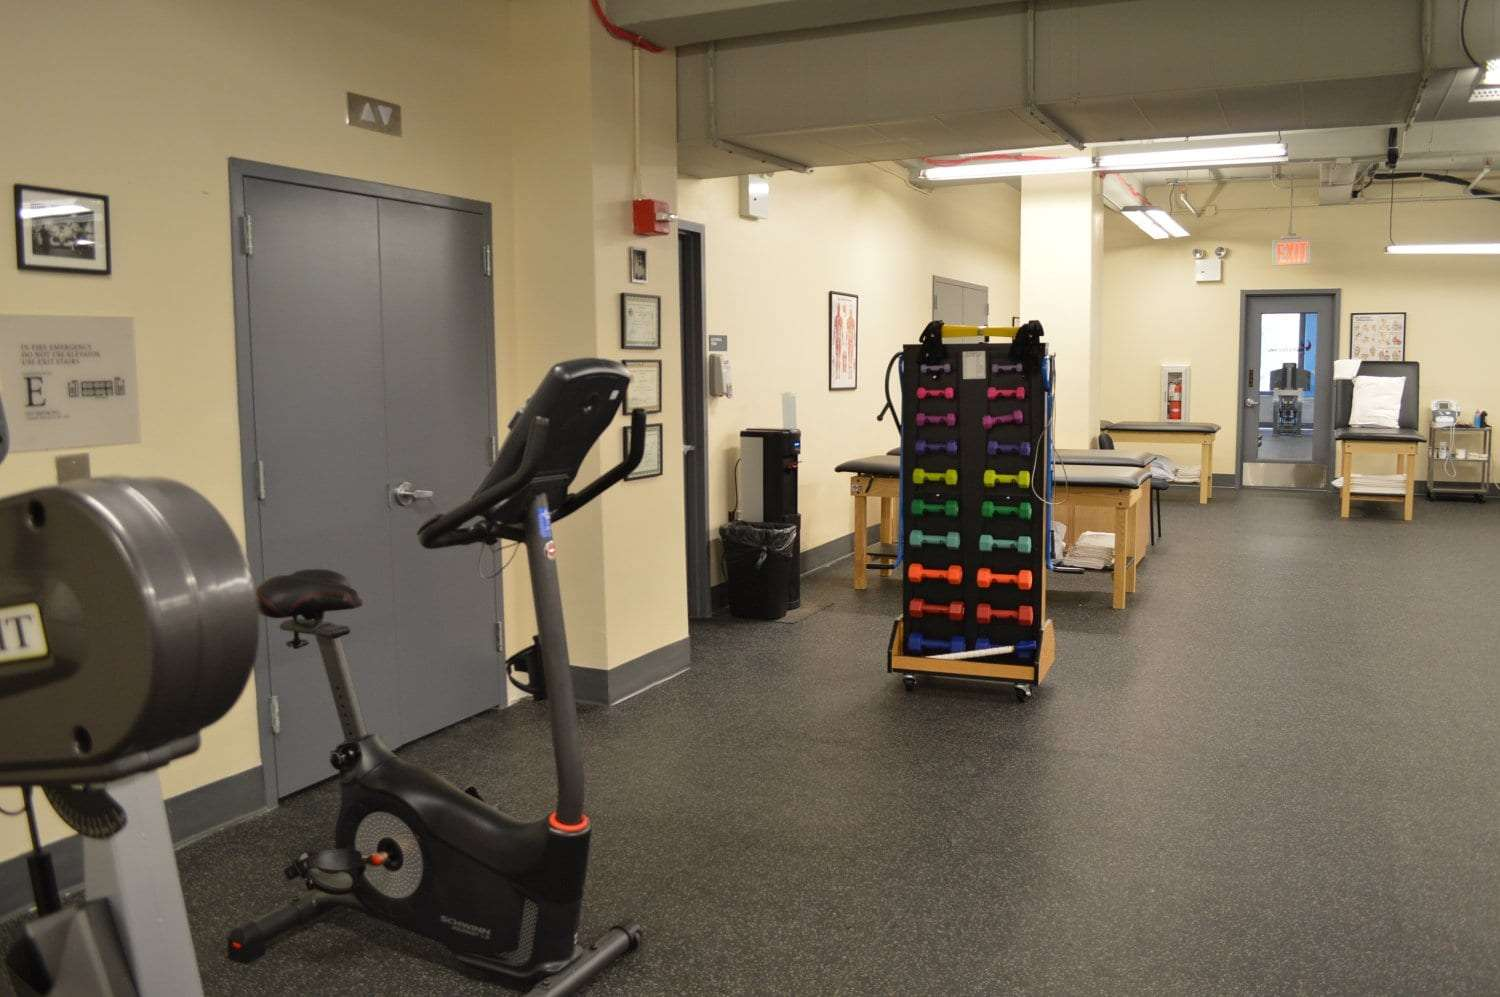 Here is an image of different weights in the training room at our physical therapy clinic in West Pennplaza, New York. The facility is located in Midtown West Manhattan. These weights are great for strength training.